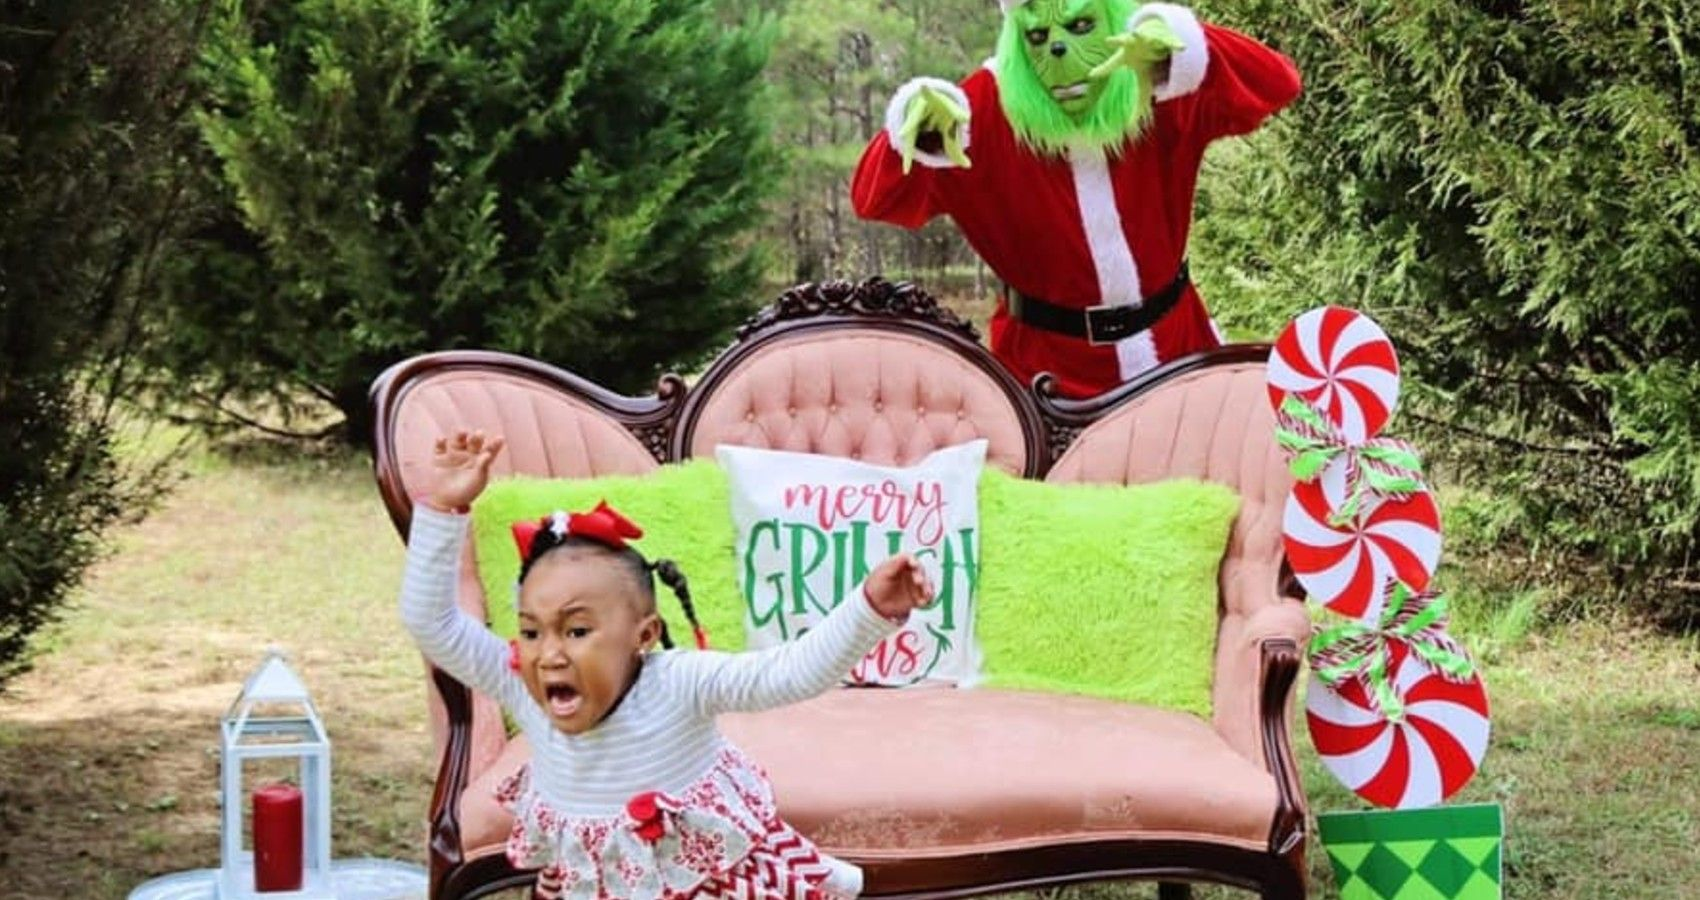 The Grinch Crashes A Little Girl's Photoshoot | Moms.com